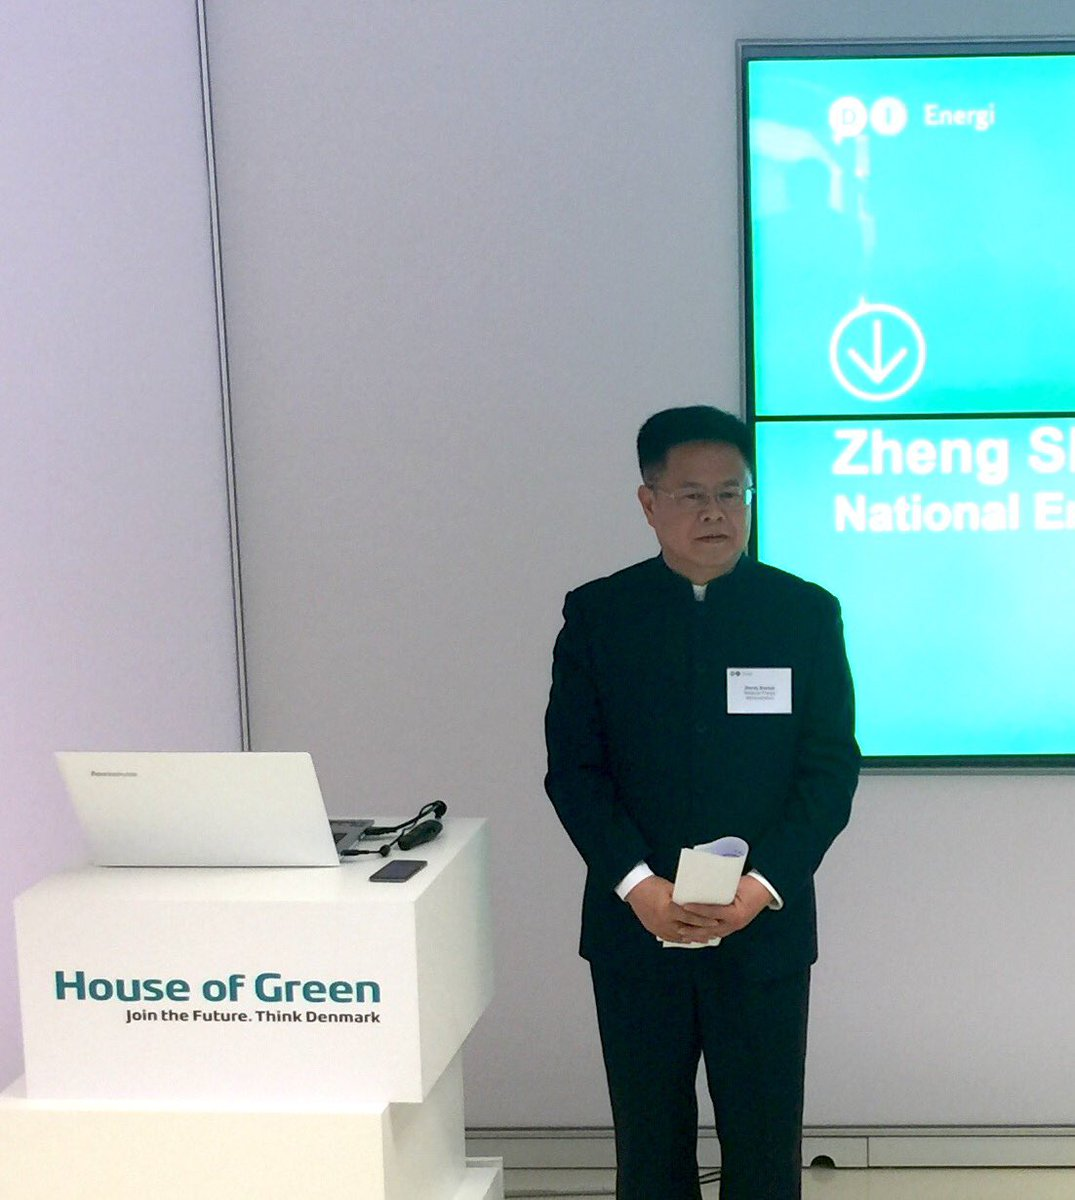 NEA vice minister Zheng Shanjie discuss power plant flexibility in House of Green in Copenhagen with Danish experts